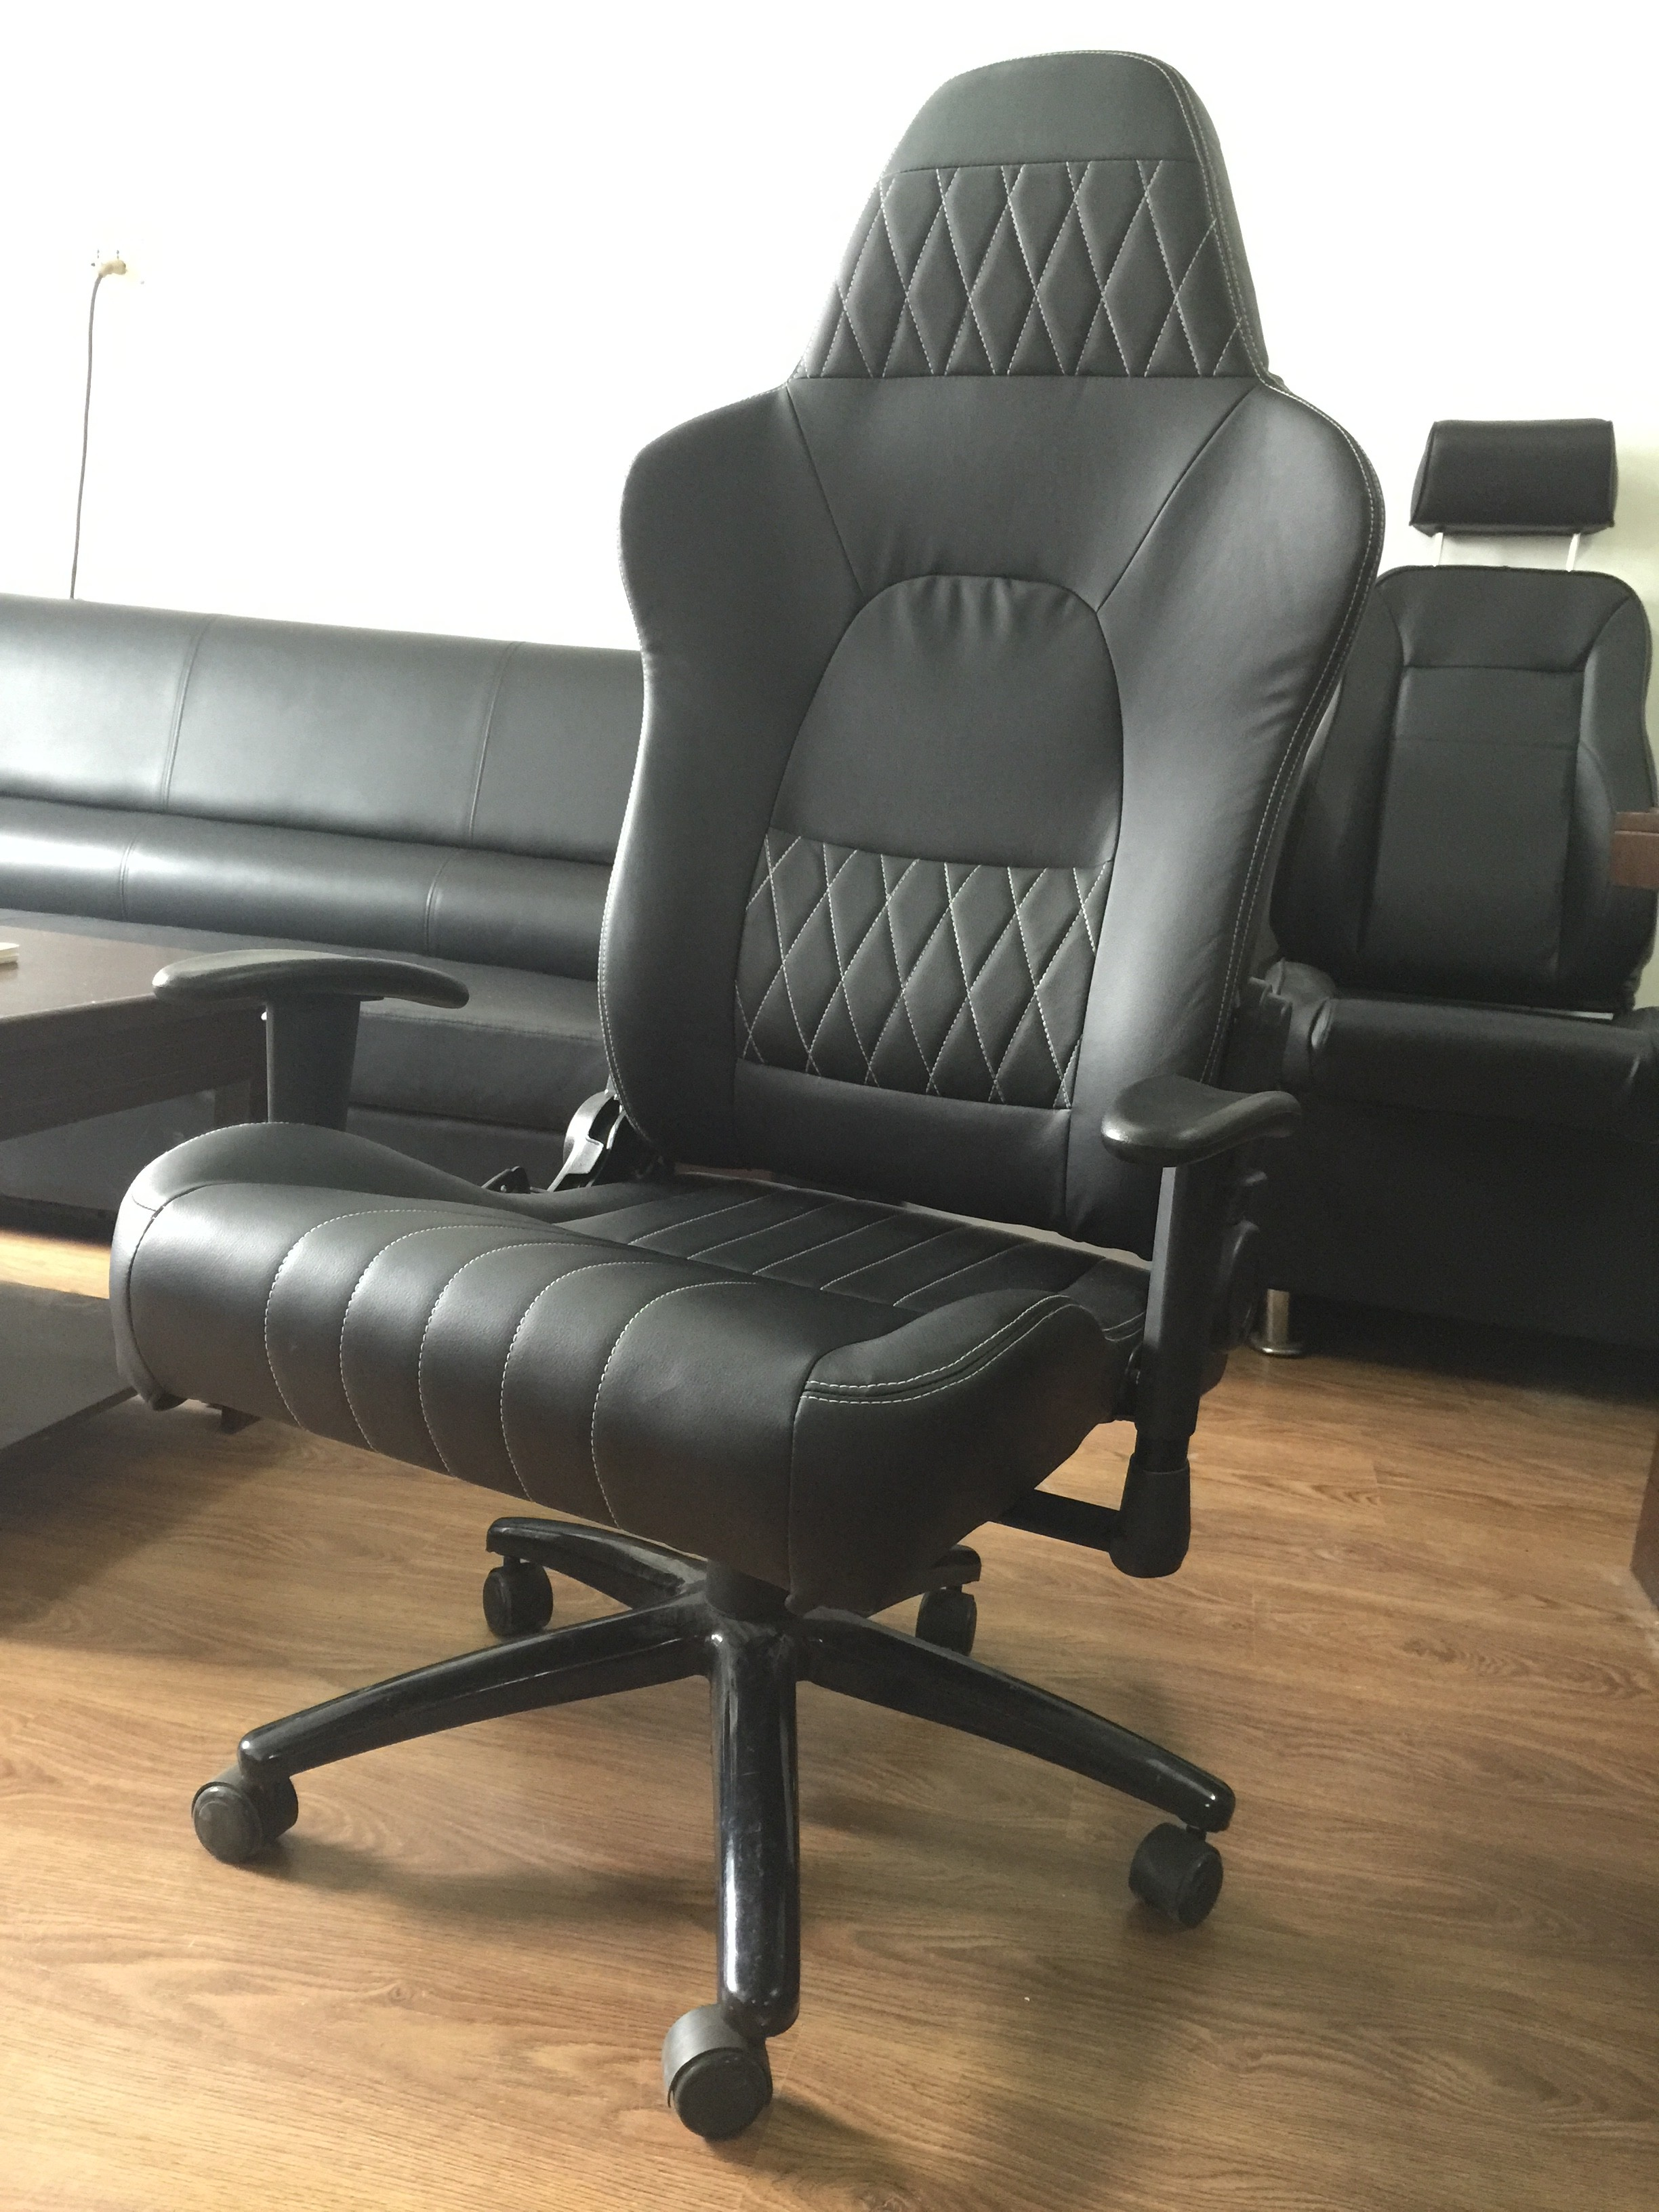 White Desk Chairs Without Wheels Modern Black Ergonomic Swivel Office Chair With Wheels